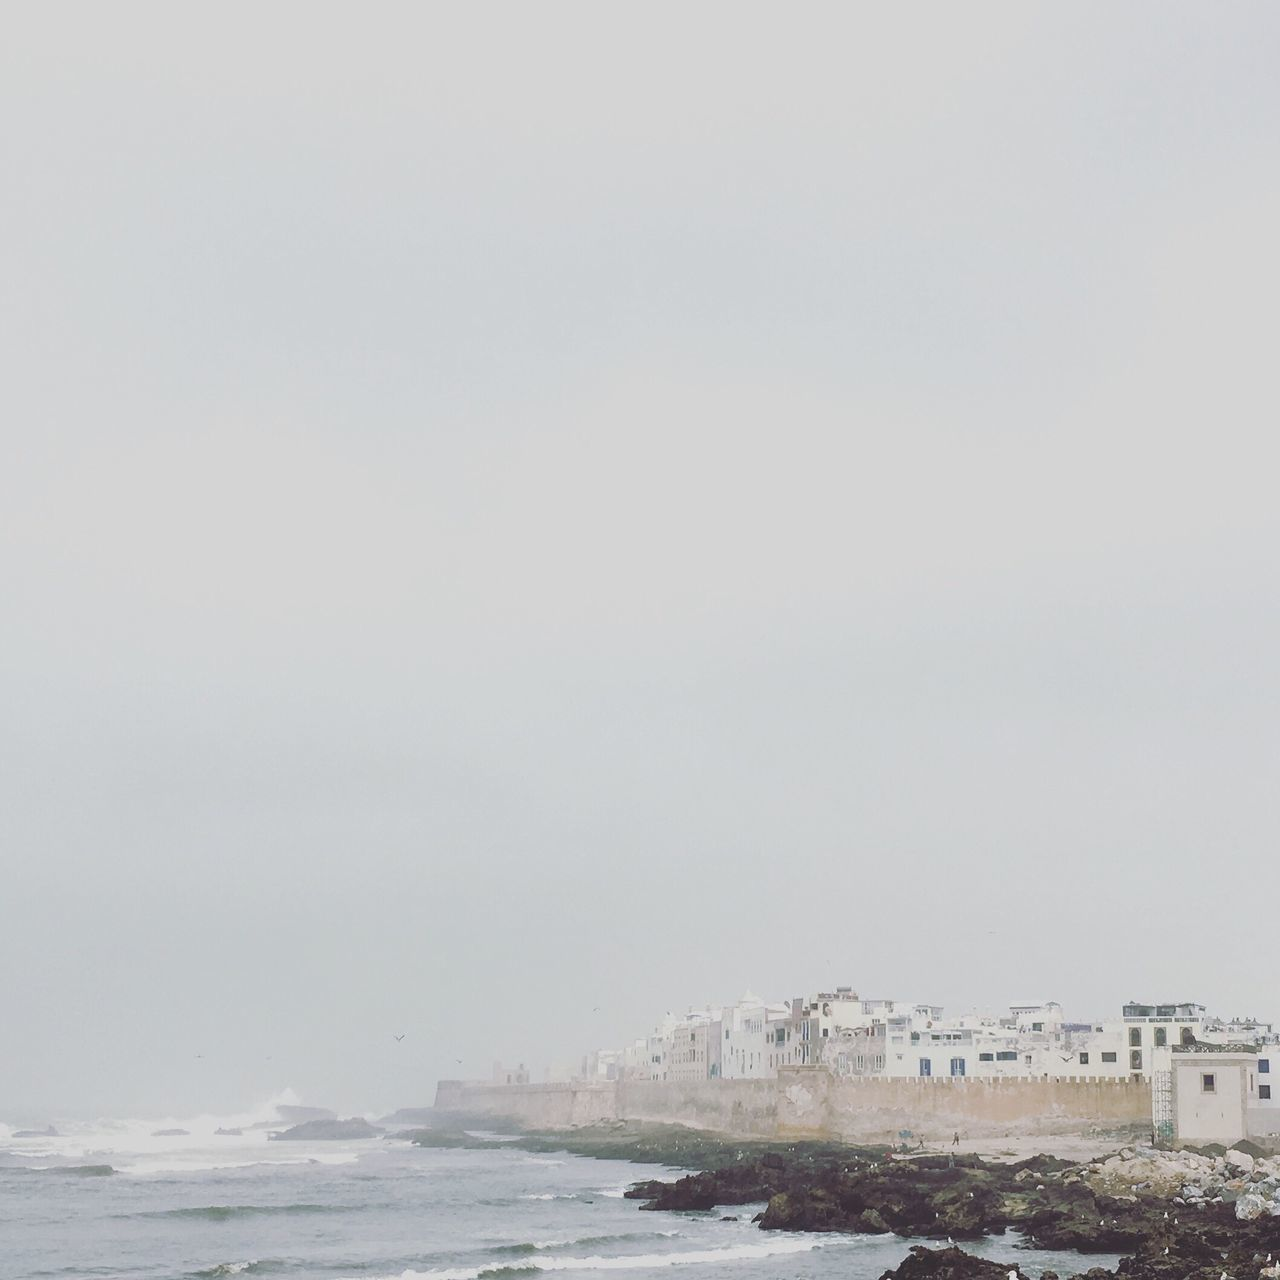 Essaouira Sea Walled City Wall Water Waterfront Sky Gray White Fortress Ramparts Essaouira Morocco Atlantic Ocean Waves Waves Crashing Rough Sea Portuguese Architecture